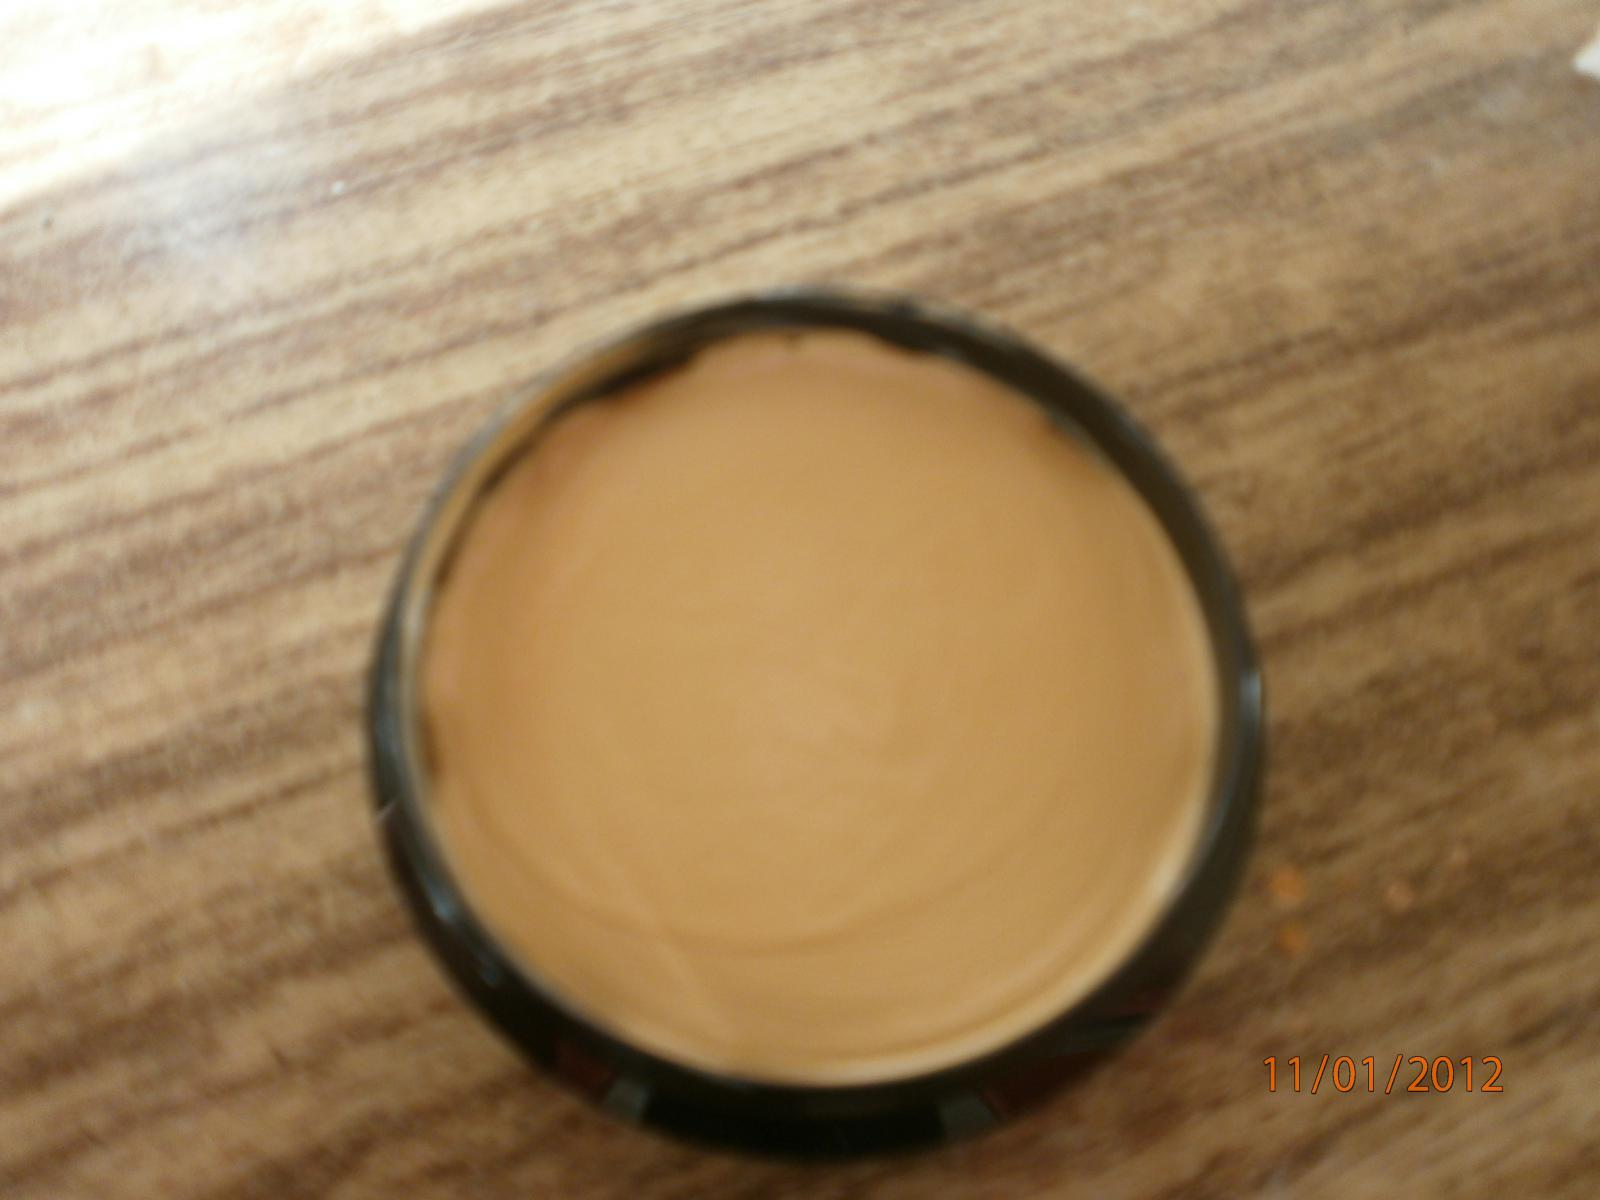 Mehron Pro HD foundation